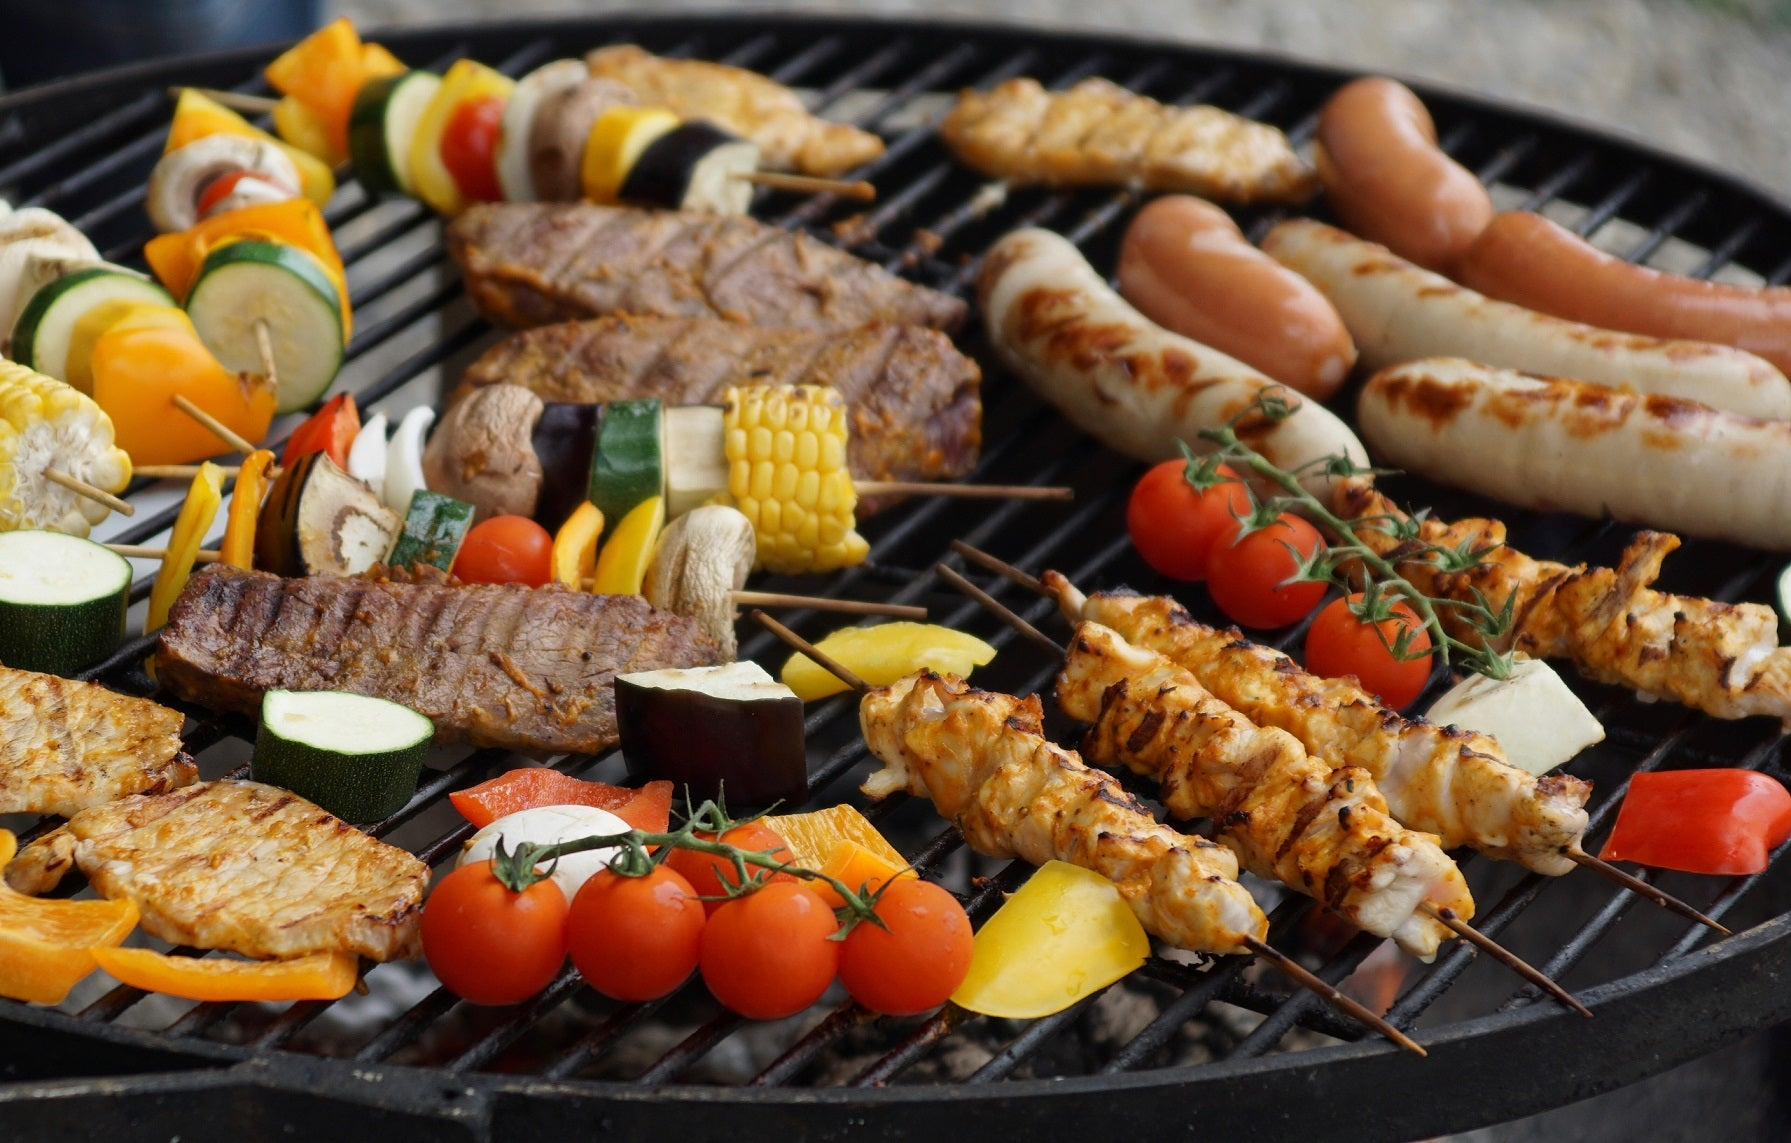 Food grilling on a grill top